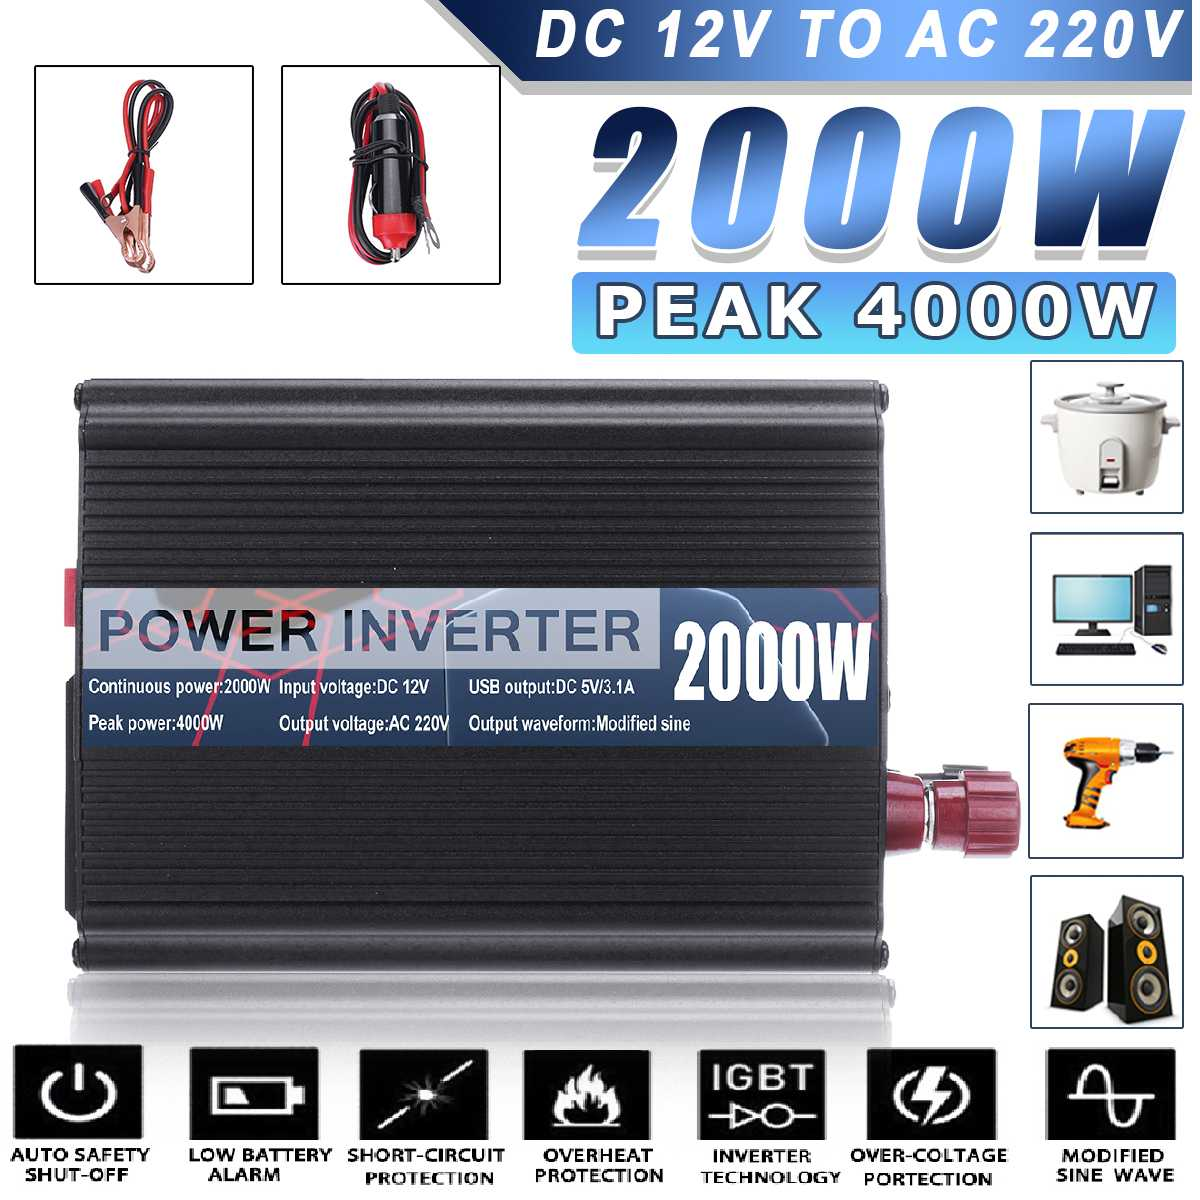 Dual USB 4000W Max DC 12V to AC 220V Car Power Inverter Charger Converter Adapter DC <font><b>12</b></font> to AC <font><b>220</b></font> Modified Sine Wave Transformer image